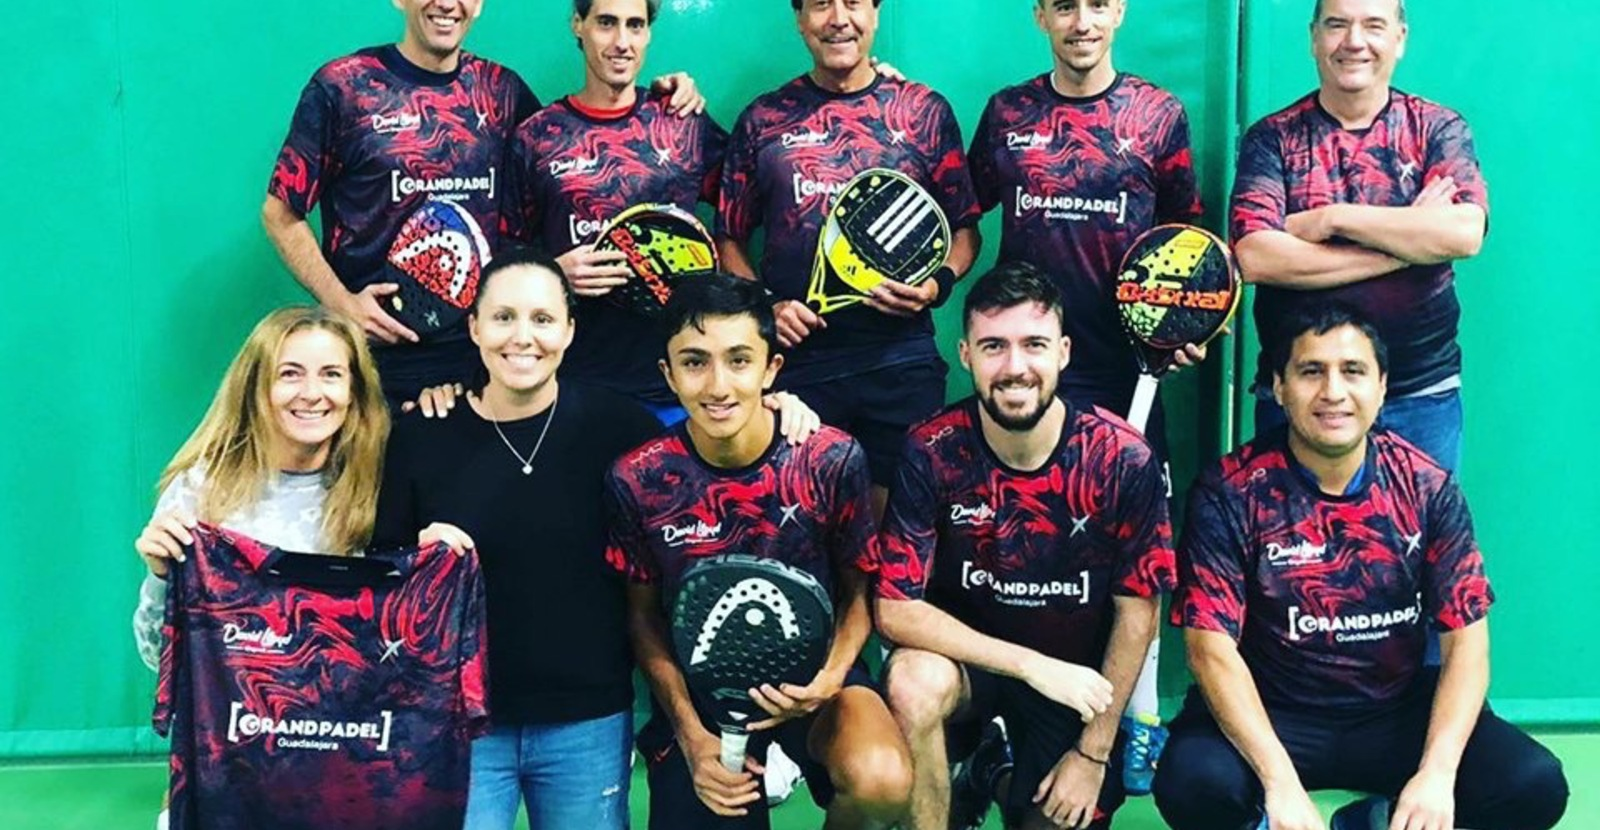 So proud of this team #davidlloydchigwellofficial . High playing standard at the National  Club Championship (National #padel Finals). Thank you  #dropshotuk for supporting my club's team, #headuk for sponsoring me , @grandpadelguada for being part of the Team Ángel Martínez Medina ,Angel Abad Merino and last but not least the rest of the team @nikhil_mohindra11 Danny BristowRocio BC @yolandagutierrez Gustavo Solórzano Gary Zucconi@josecabello @silkmanconor ‍. You were amazing competing against the best padel teams in the #uk and #spain . Thank you @ltapadel for organising the event, @javi_sgo for your effort and congrats to All participating teams ! Great padel weekend!!#victorperezcoach @murraytom3 @padel_lond0n Toby Bawden Borja Varas VivesDavid Lloyd Clubs